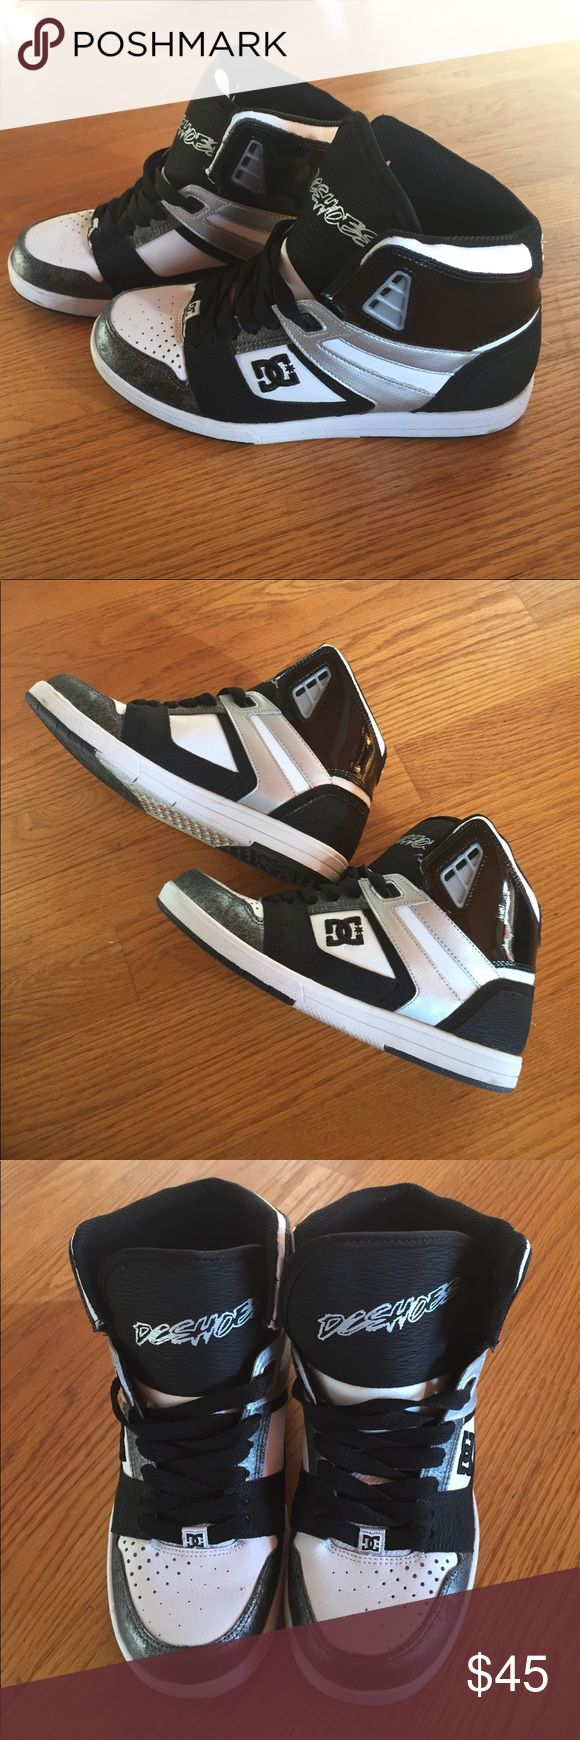 Barely Worn Black/White/Silver Tres DC Sneakers These guys are almost new - I wore them MAYBE three times. Gift from my mom after I sprained my ankle (again!), but didn't wear them much because I prefer heels ;) Anyway, they're in great condition and barely worn! Beautiful shoes, and come in the original box! DC Shoes Sneakers